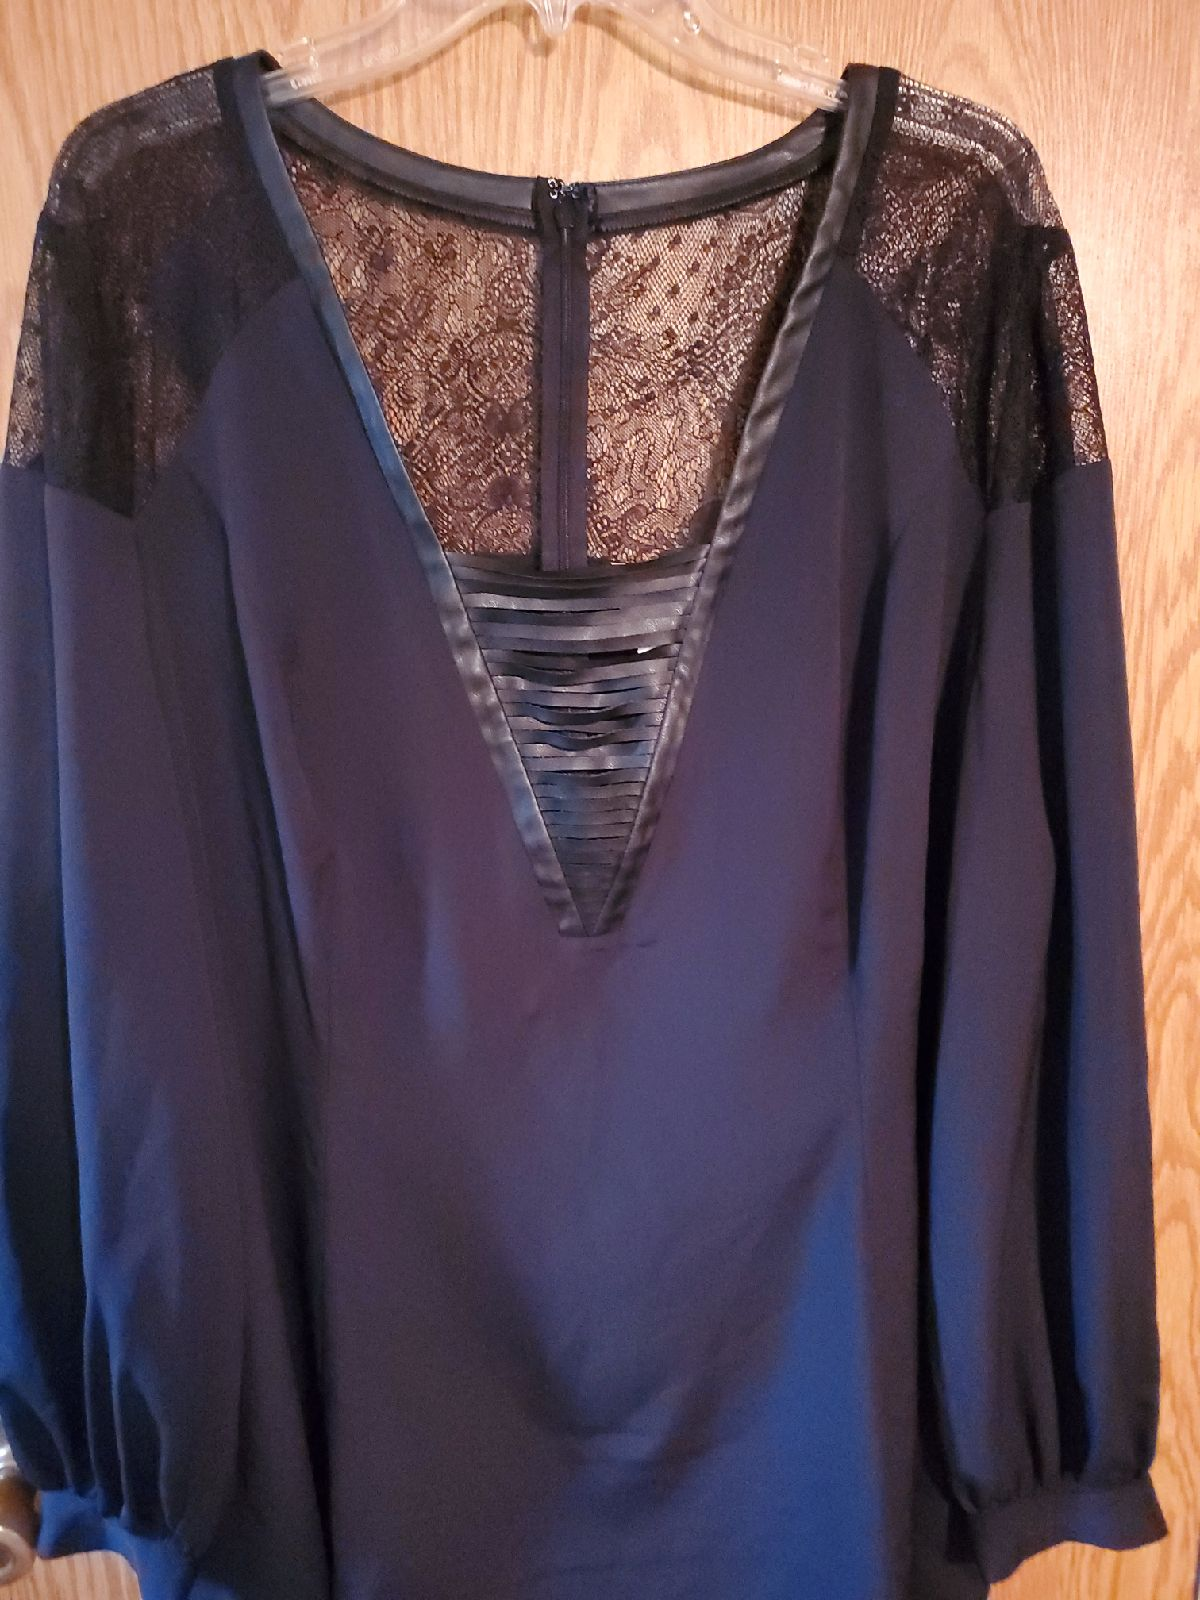 Womens blouse 3XL Bisou bisou